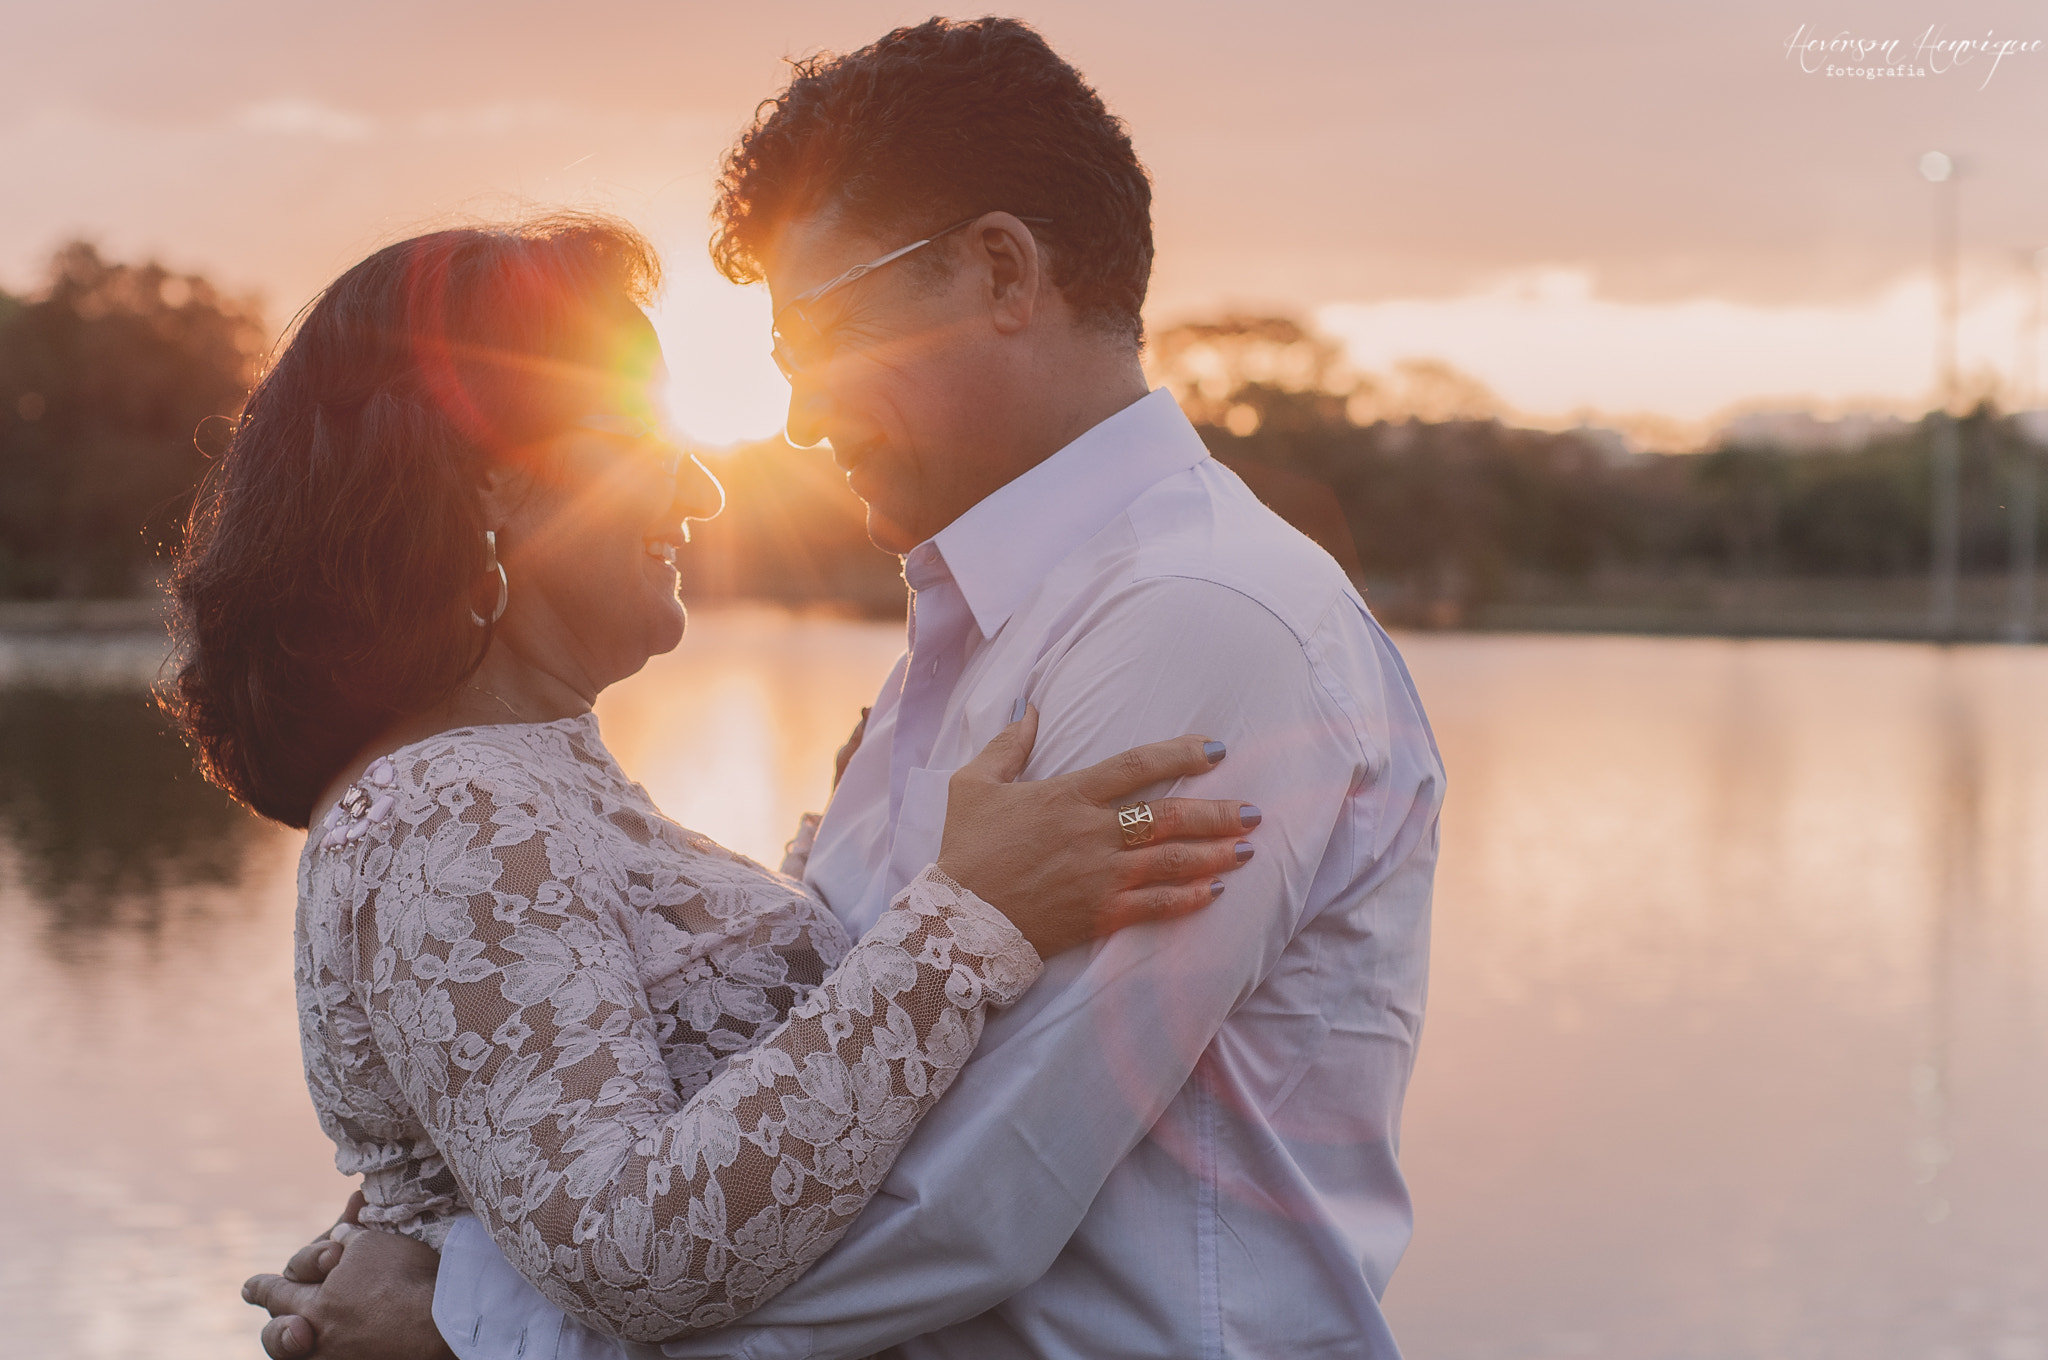 Photograph Wedding Anniversary by Heverson Henrique on 500px